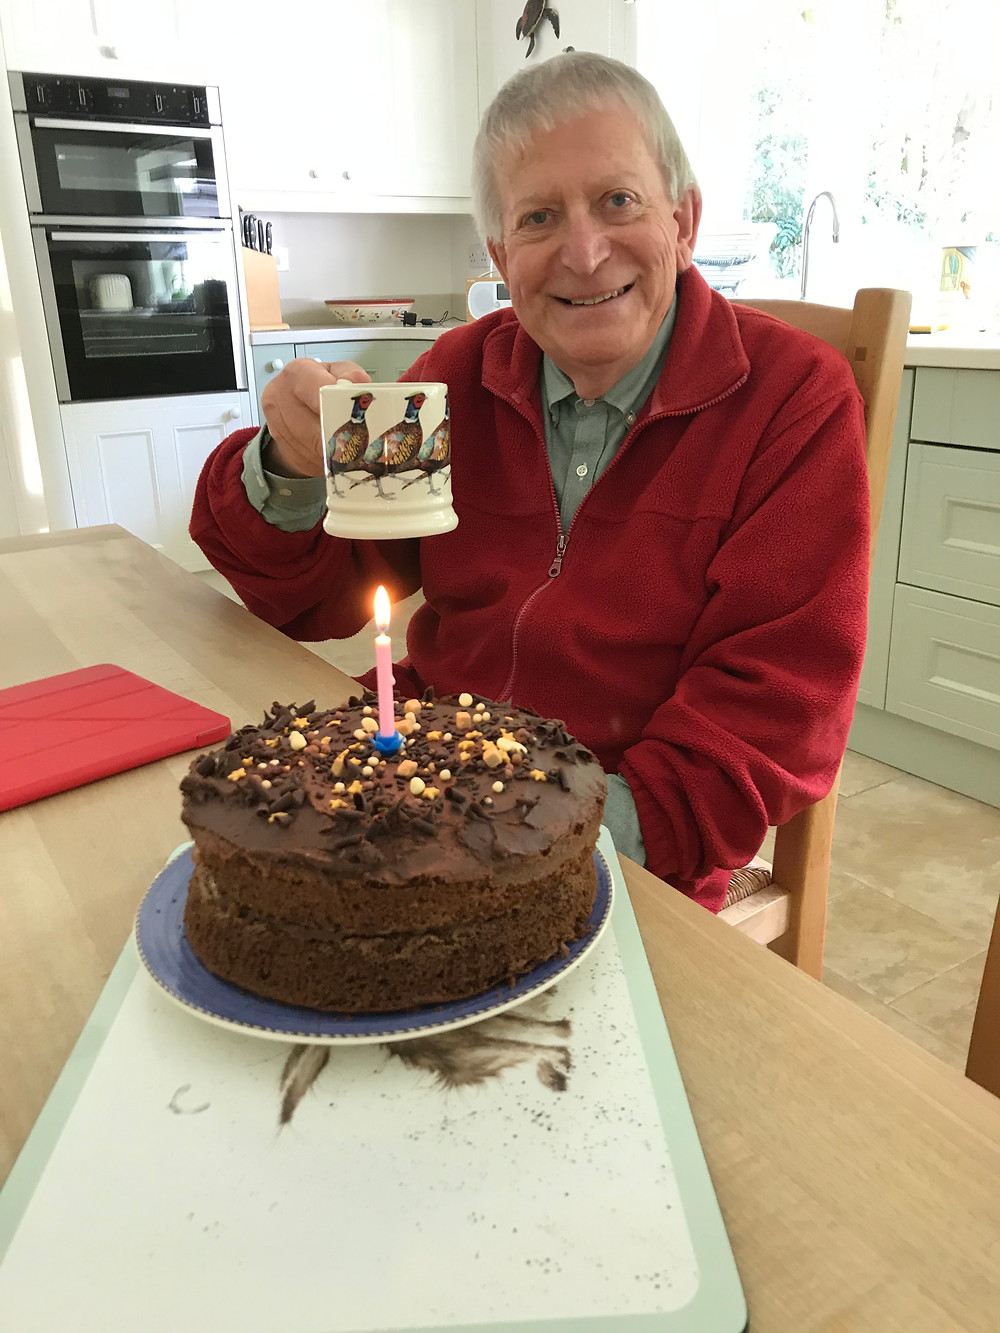 A man holds up a mug with pheasants on and smiles at the camera. Infront of him is a massive chocolate cake with happy birthday candles in